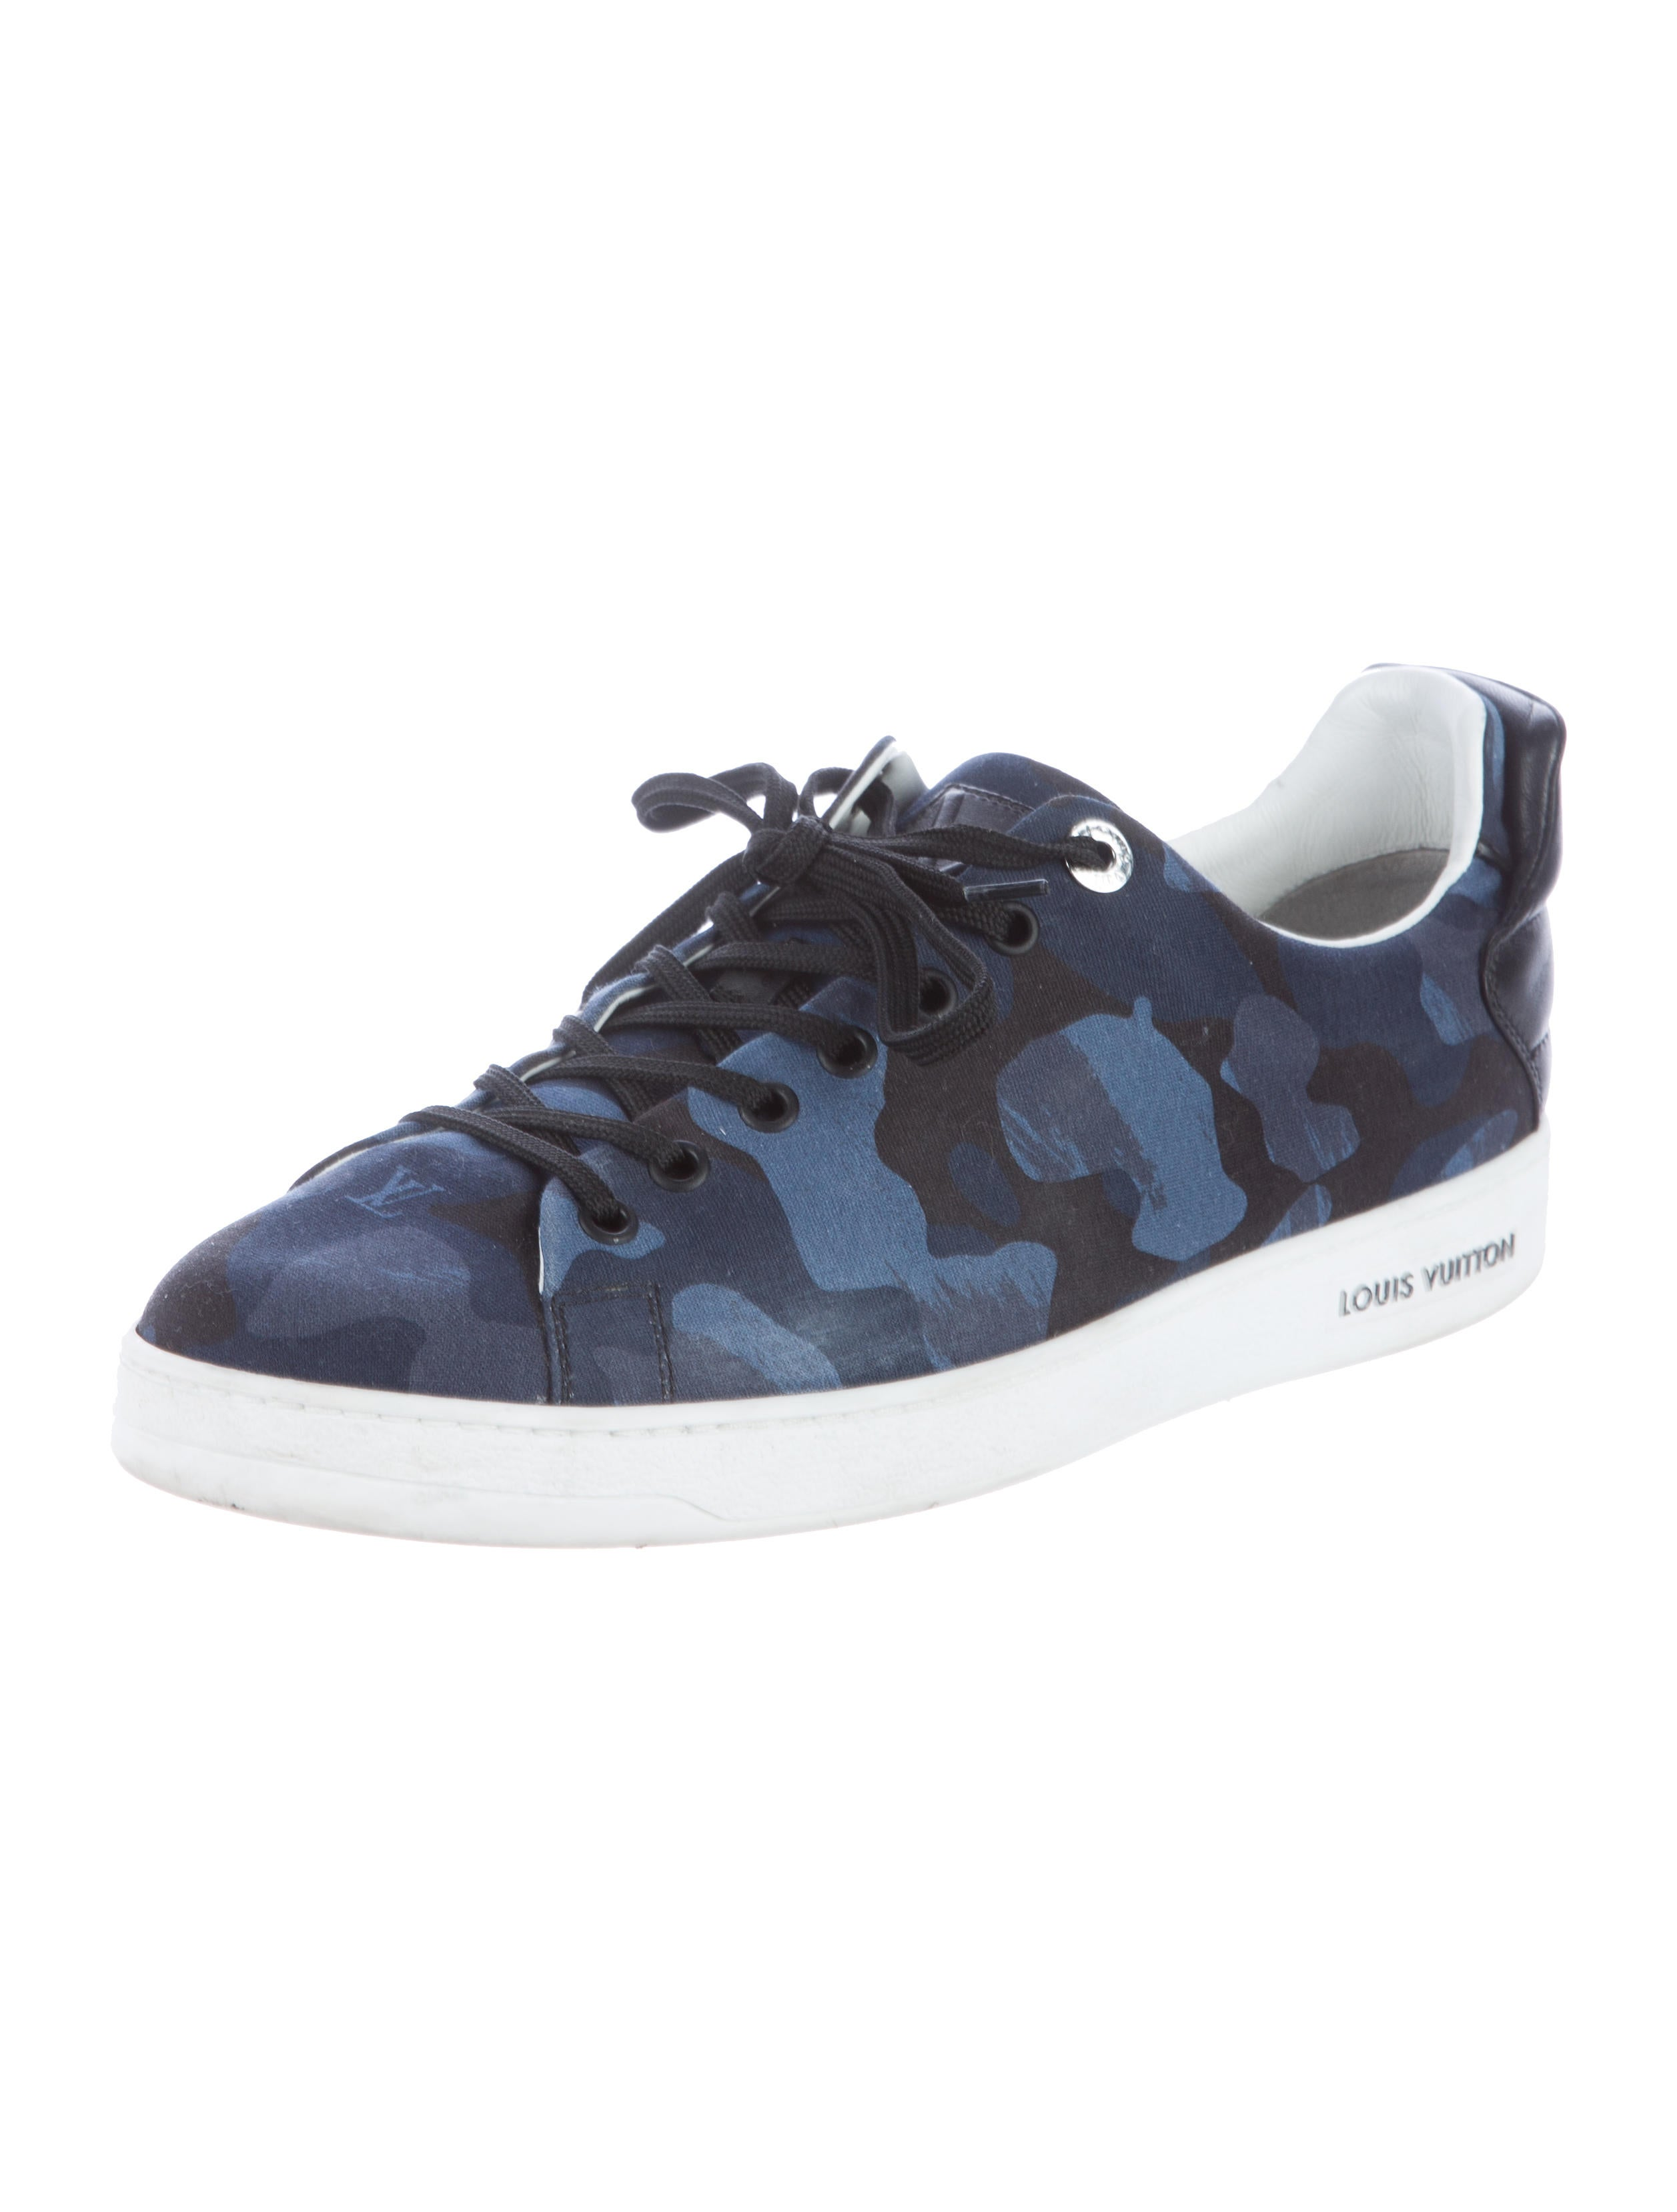 Louis Vuitton 2016 Frontrow Camouflage Sneakers Shoes  : LOU928182enlarged from www.therealreal.com size 2514 x 3317 jpeg 260kB